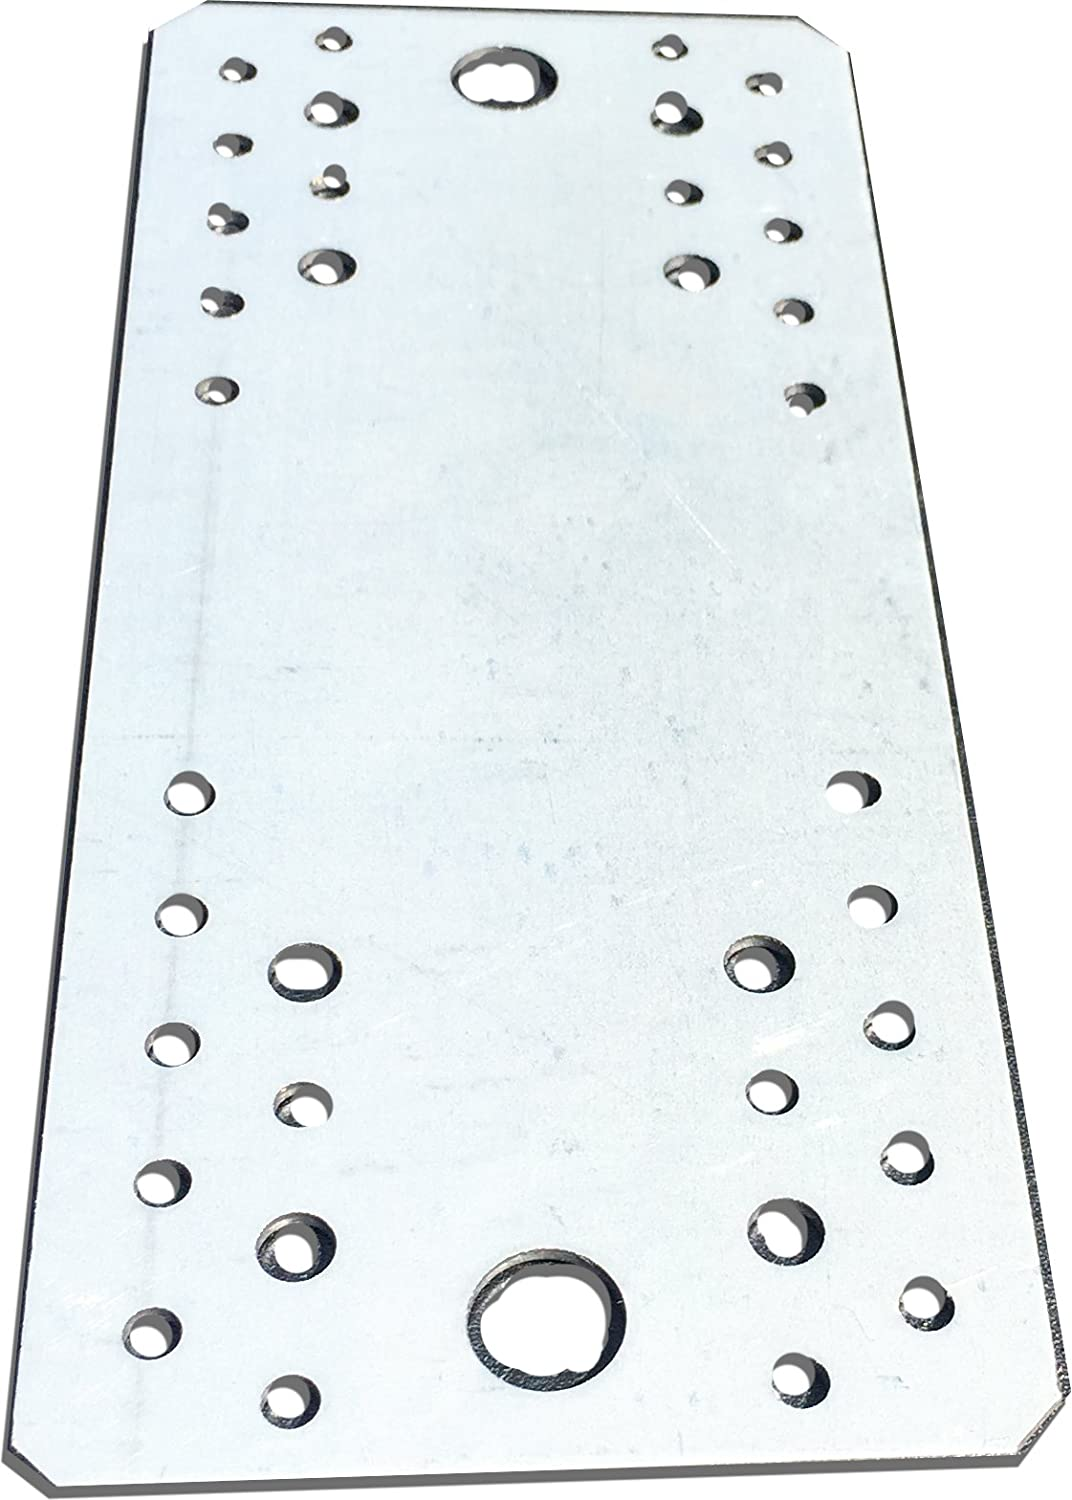 10 pcs. Flat Connecting Joining Plate, galvanised, 210 x 90 mm x 2mm OMIdeas